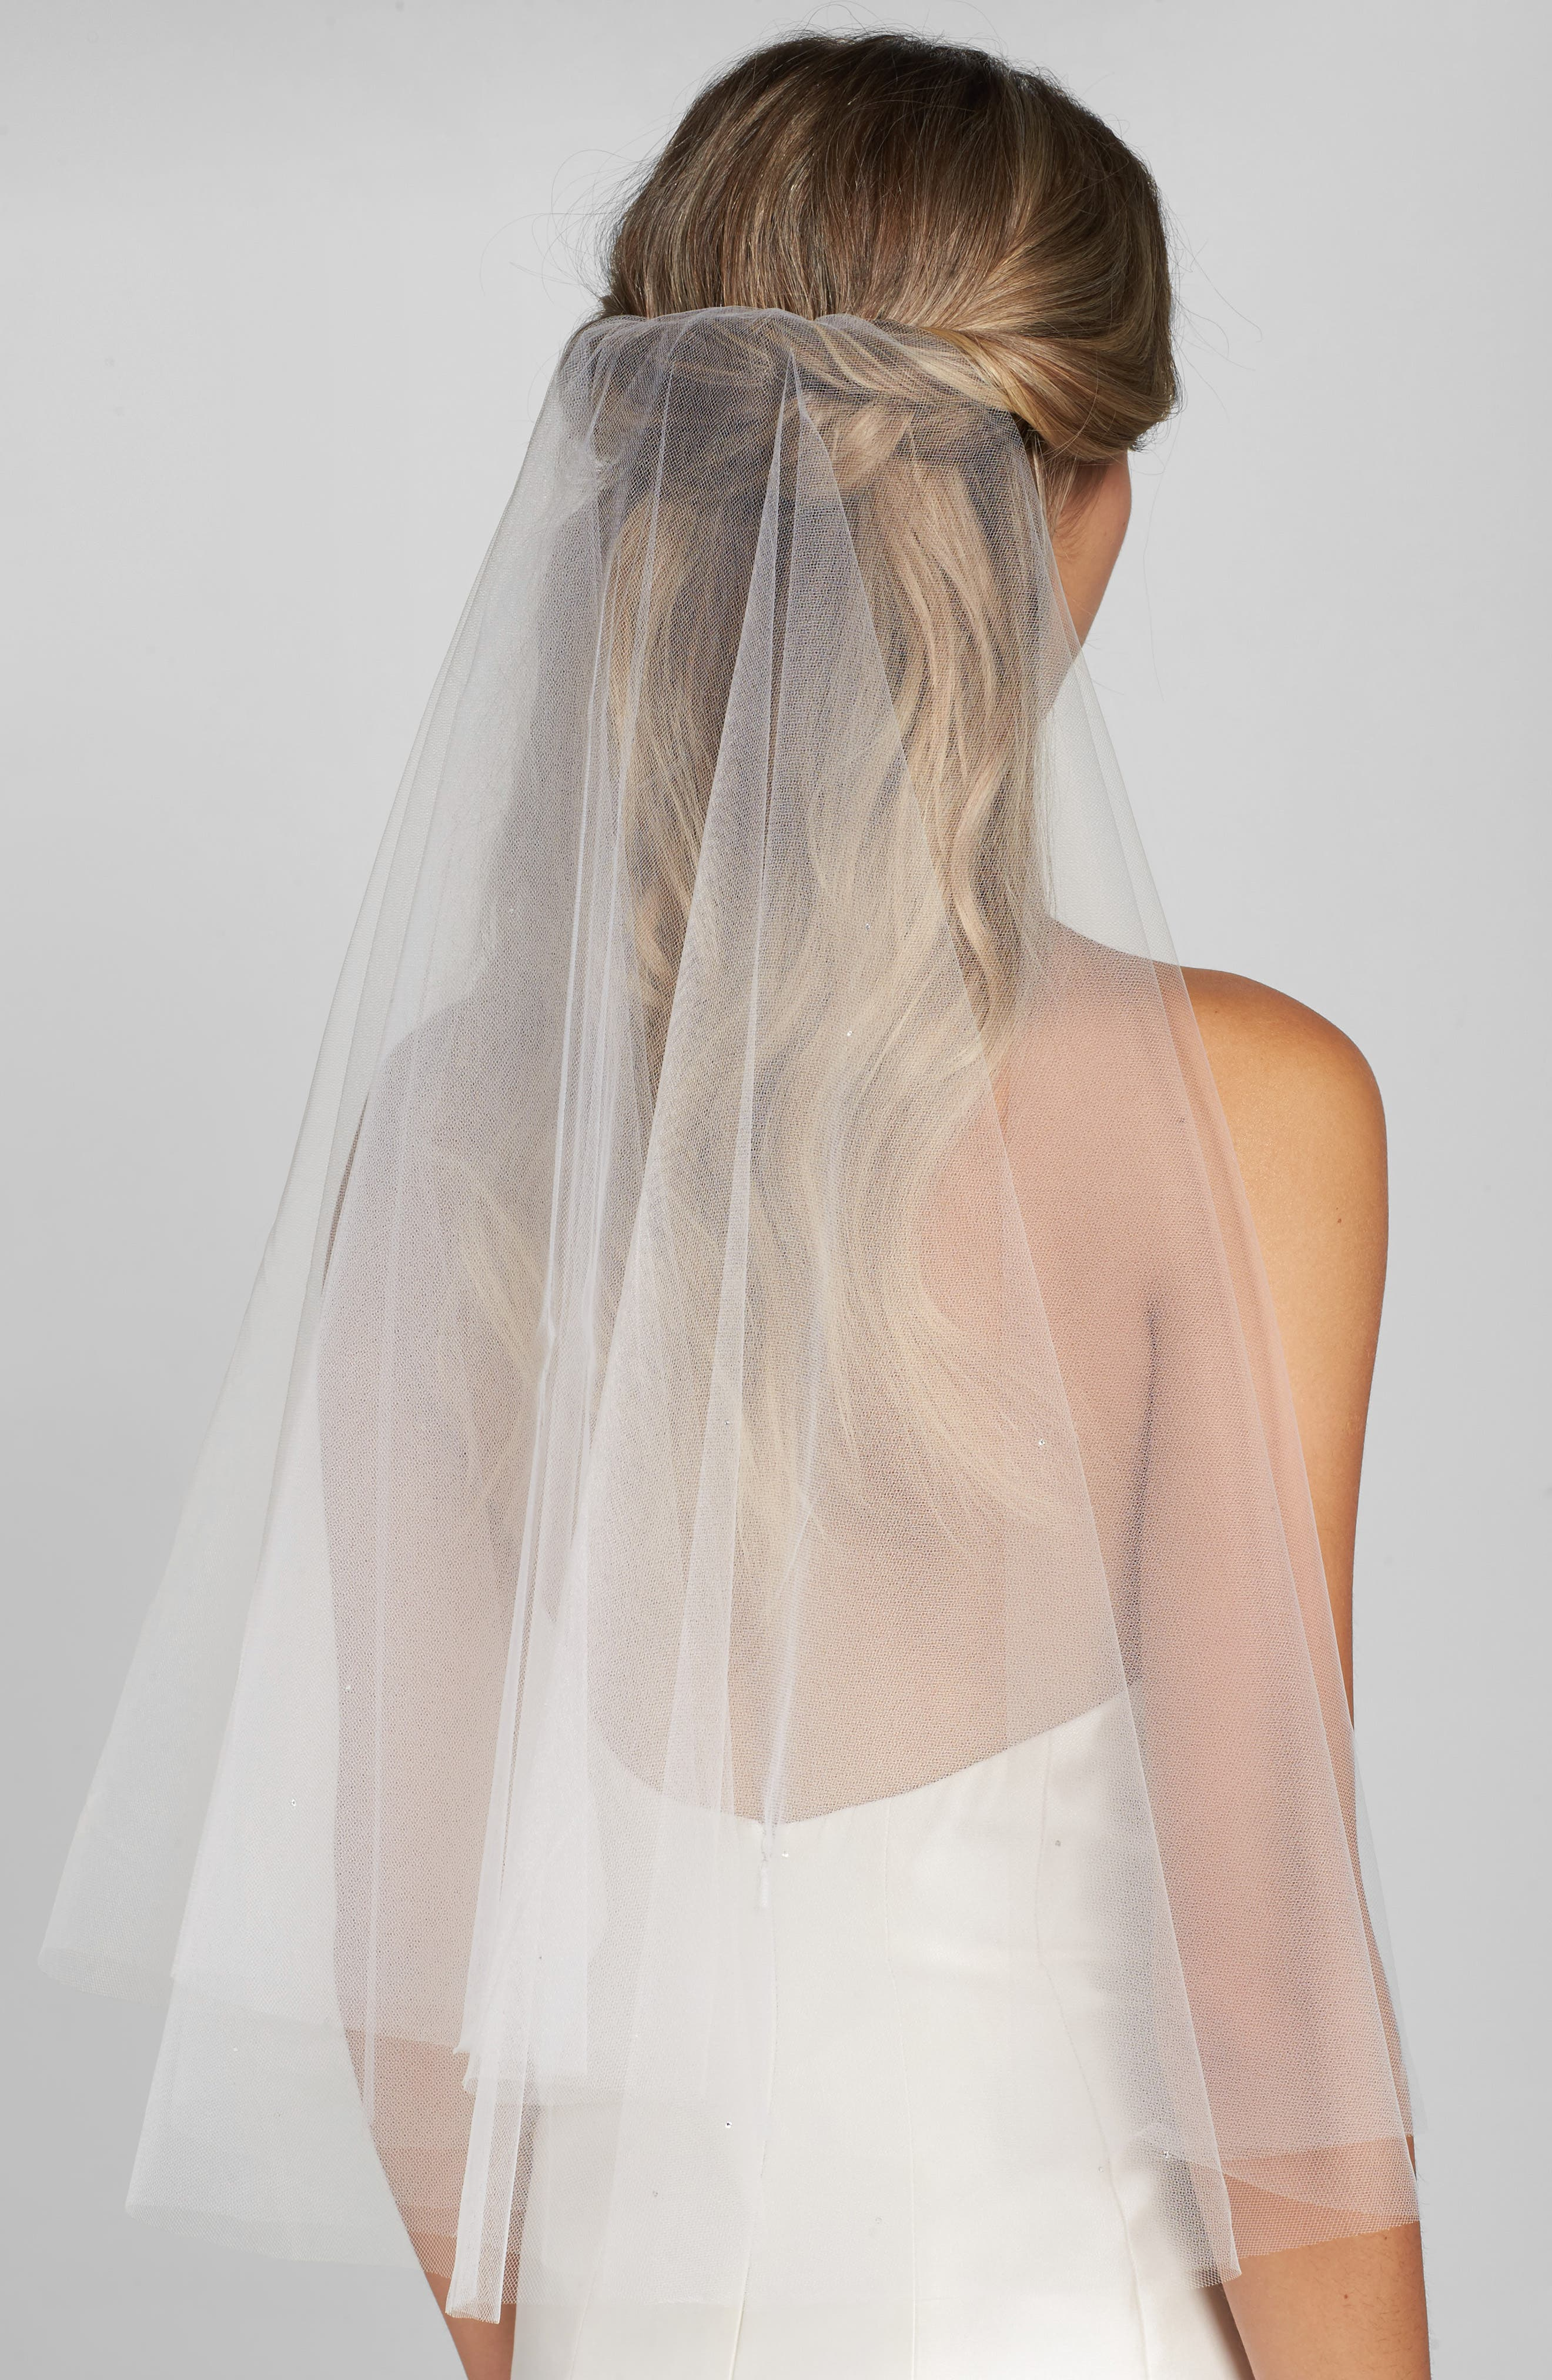 WEDDING BELLES NEW YORK 'Madeline - Crystal' Two Tier Veil, Main, color, 101